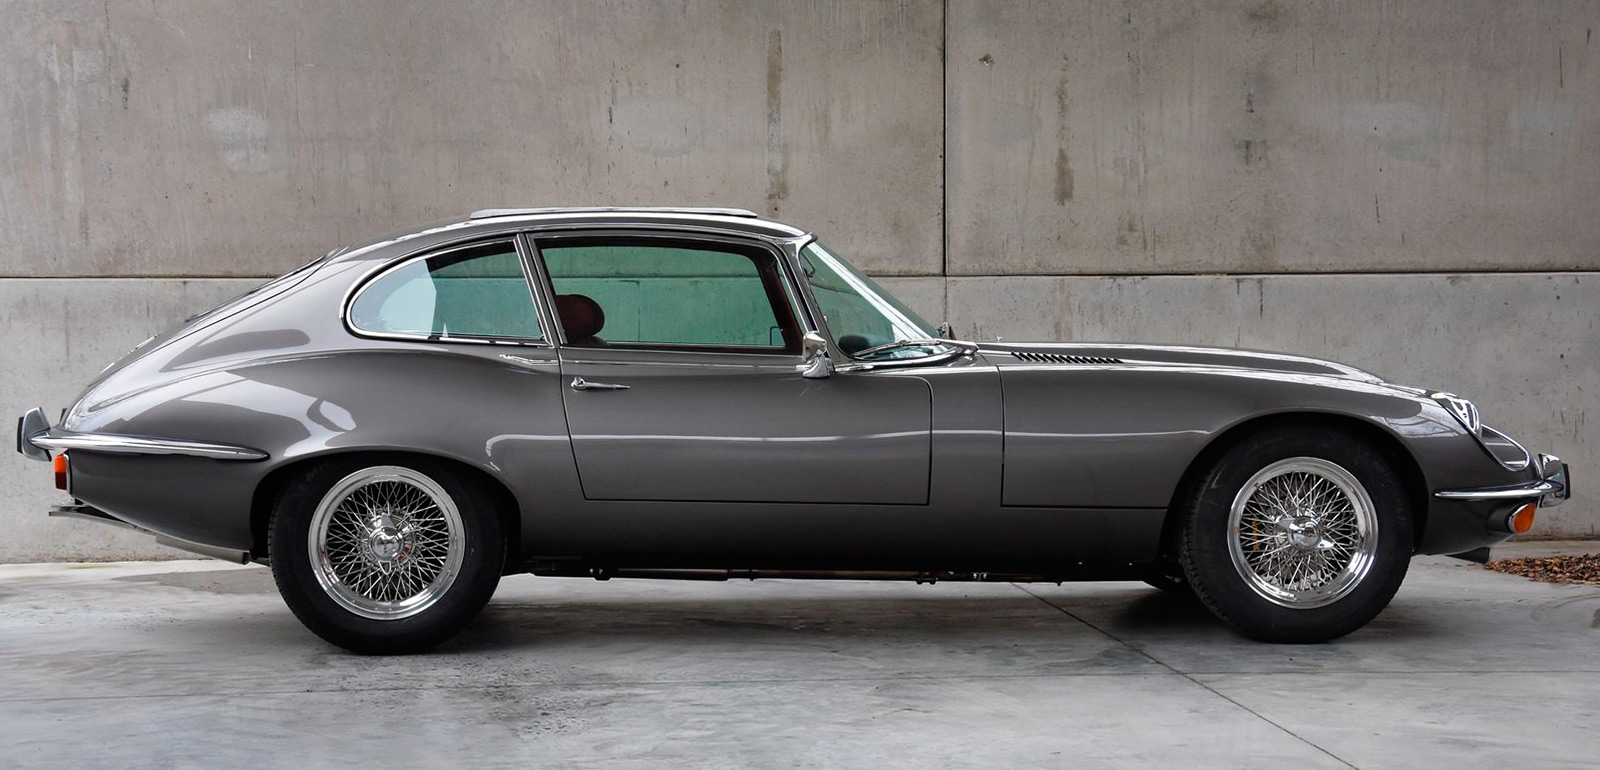 E-Type UK 1973 Jaguar E-Type Series 3 Restomod